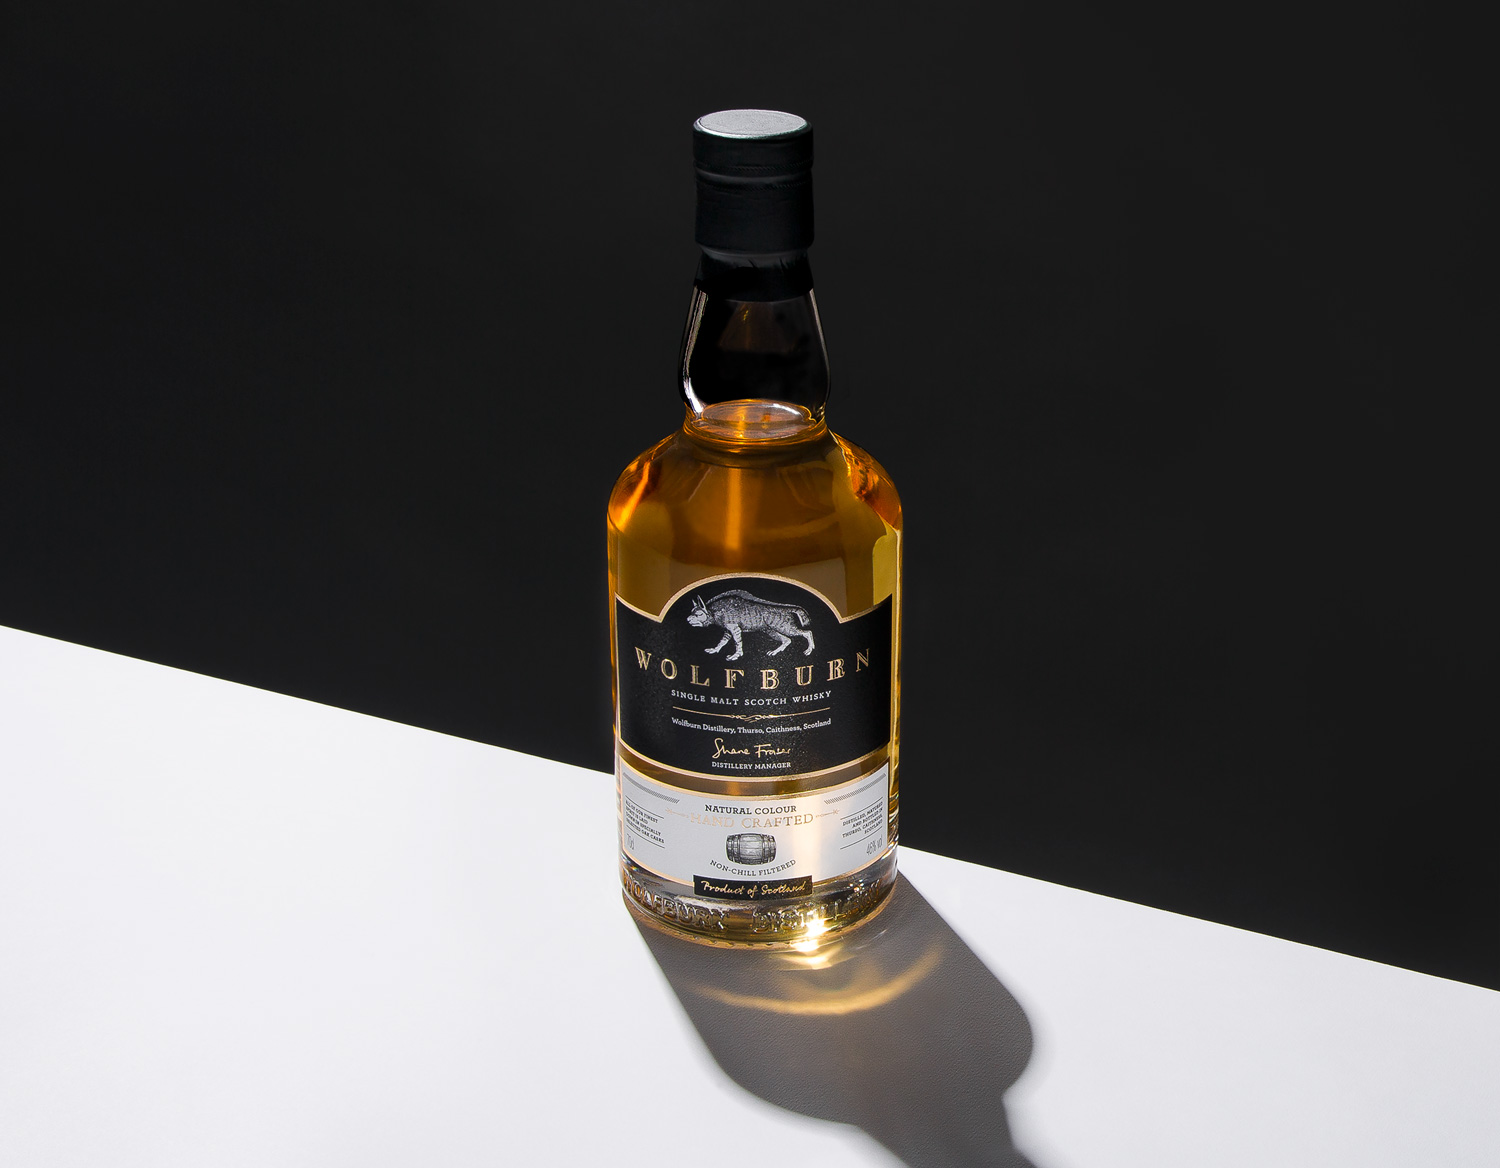 Wolfburn Whisky Progress Packaging Bottle Label